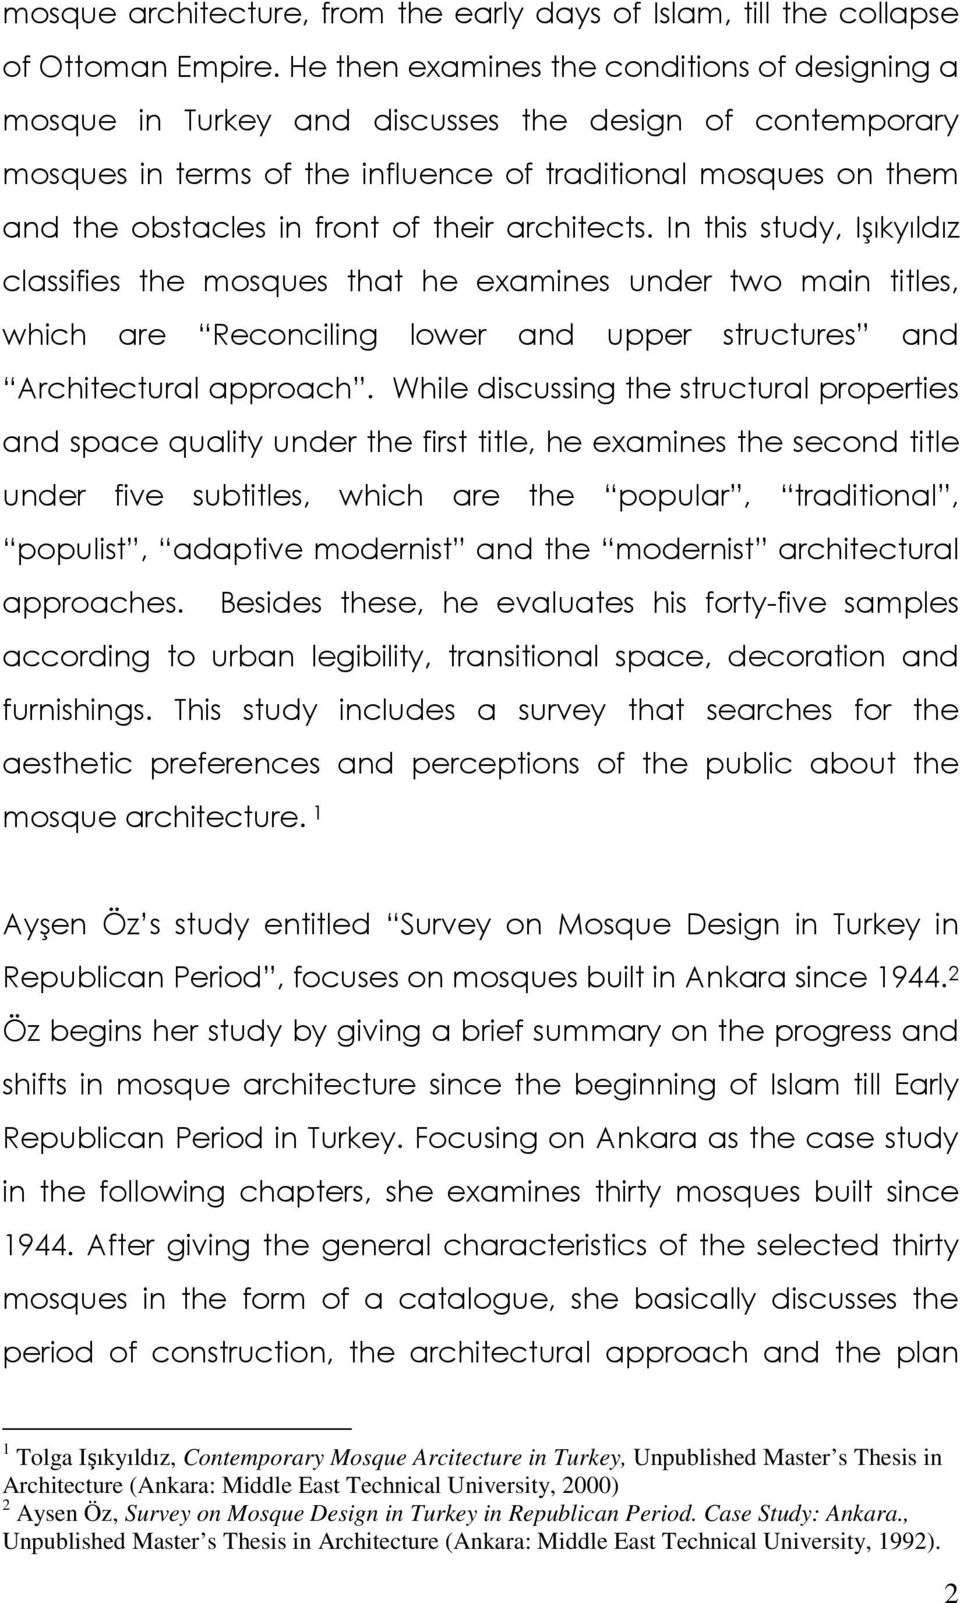 their architects. In this study, Işıkyıldız classifies the mosques that he examines under two main titles, which are Reconciling lower and upper structures and Architectural approach.